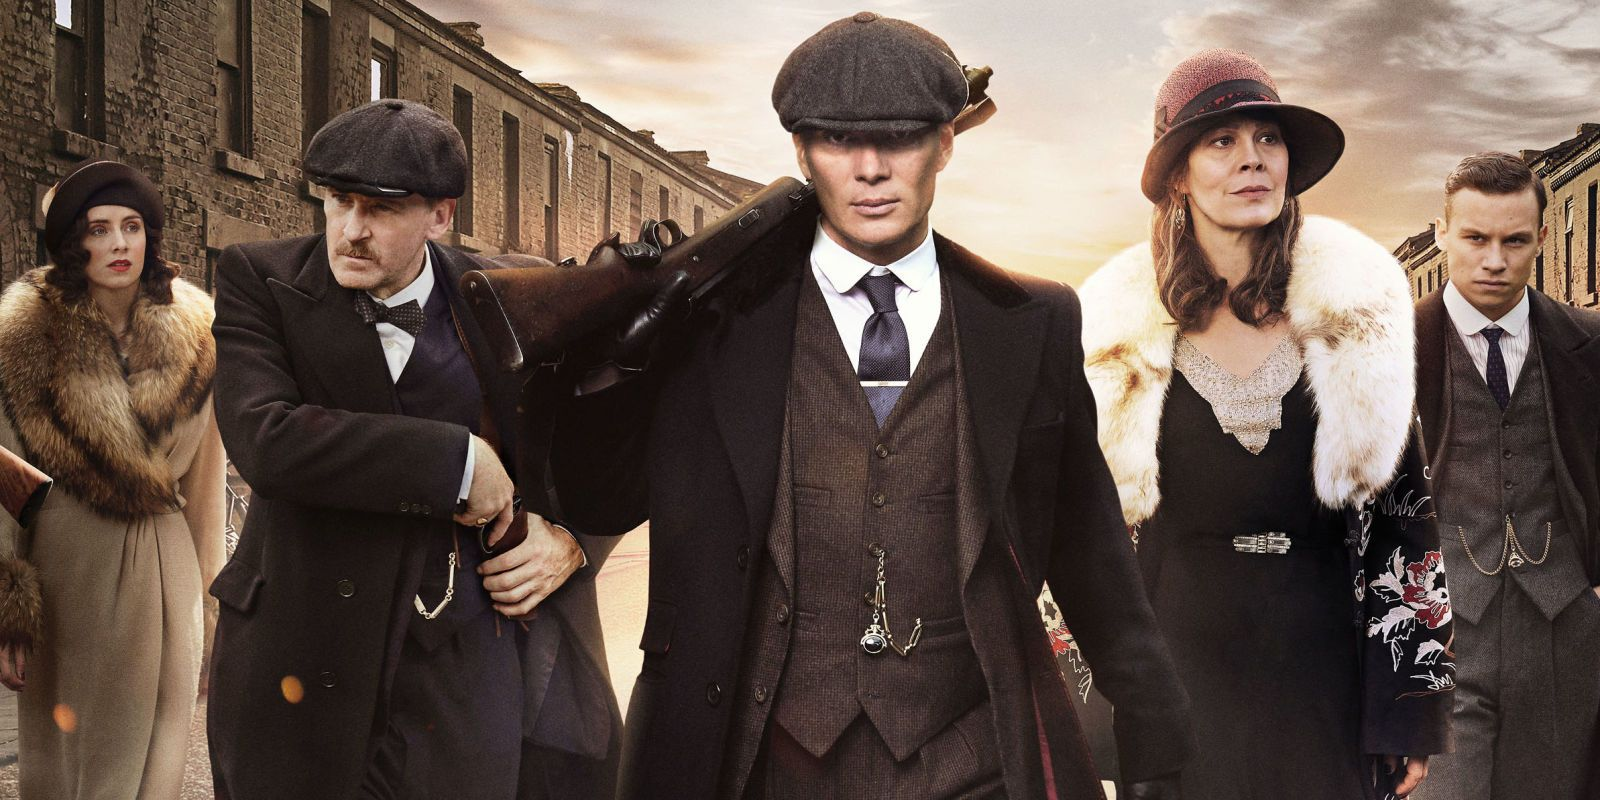 Peaky Blinders Season 6: Release Date, Cast, Details, and More